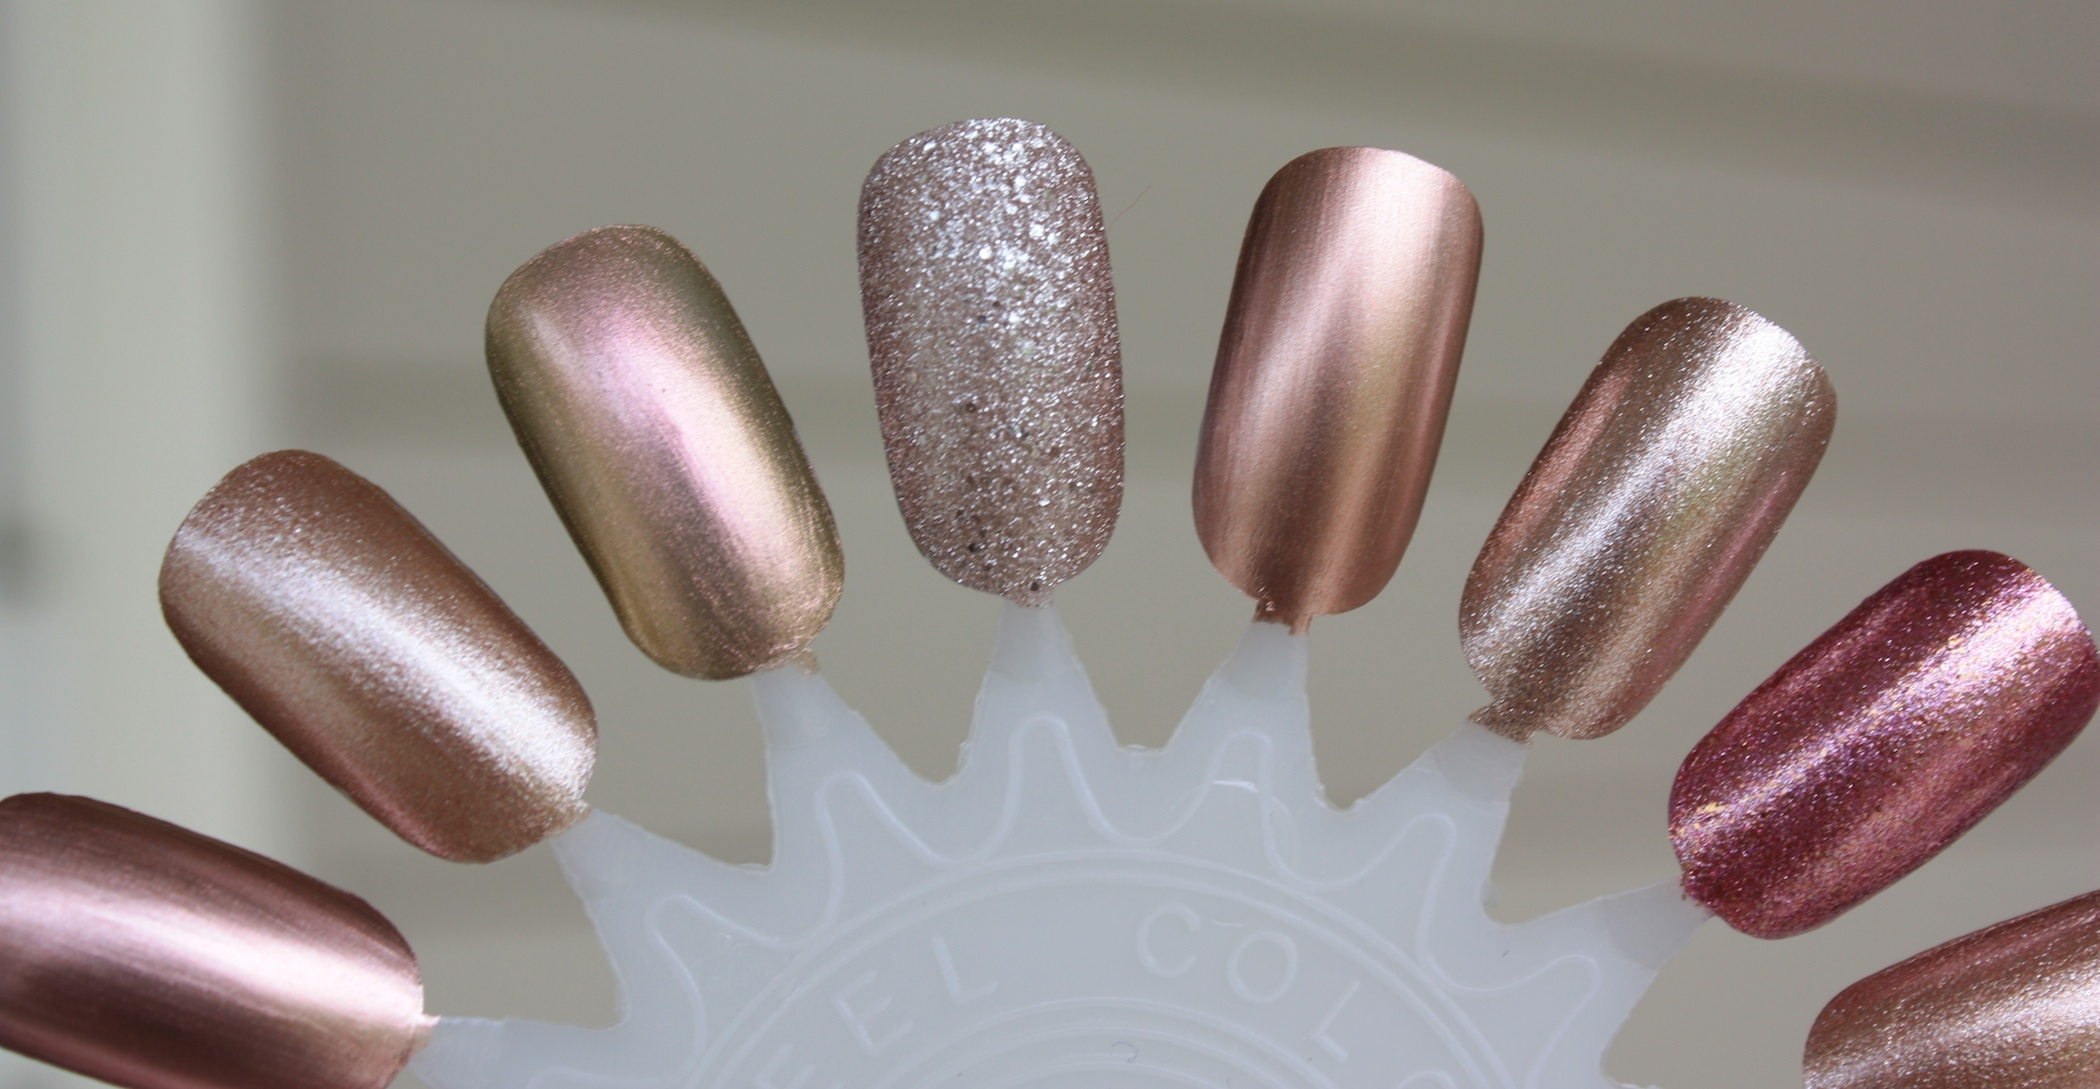 Rose Gold Polish Swatches and Comparisons! – horrendous color